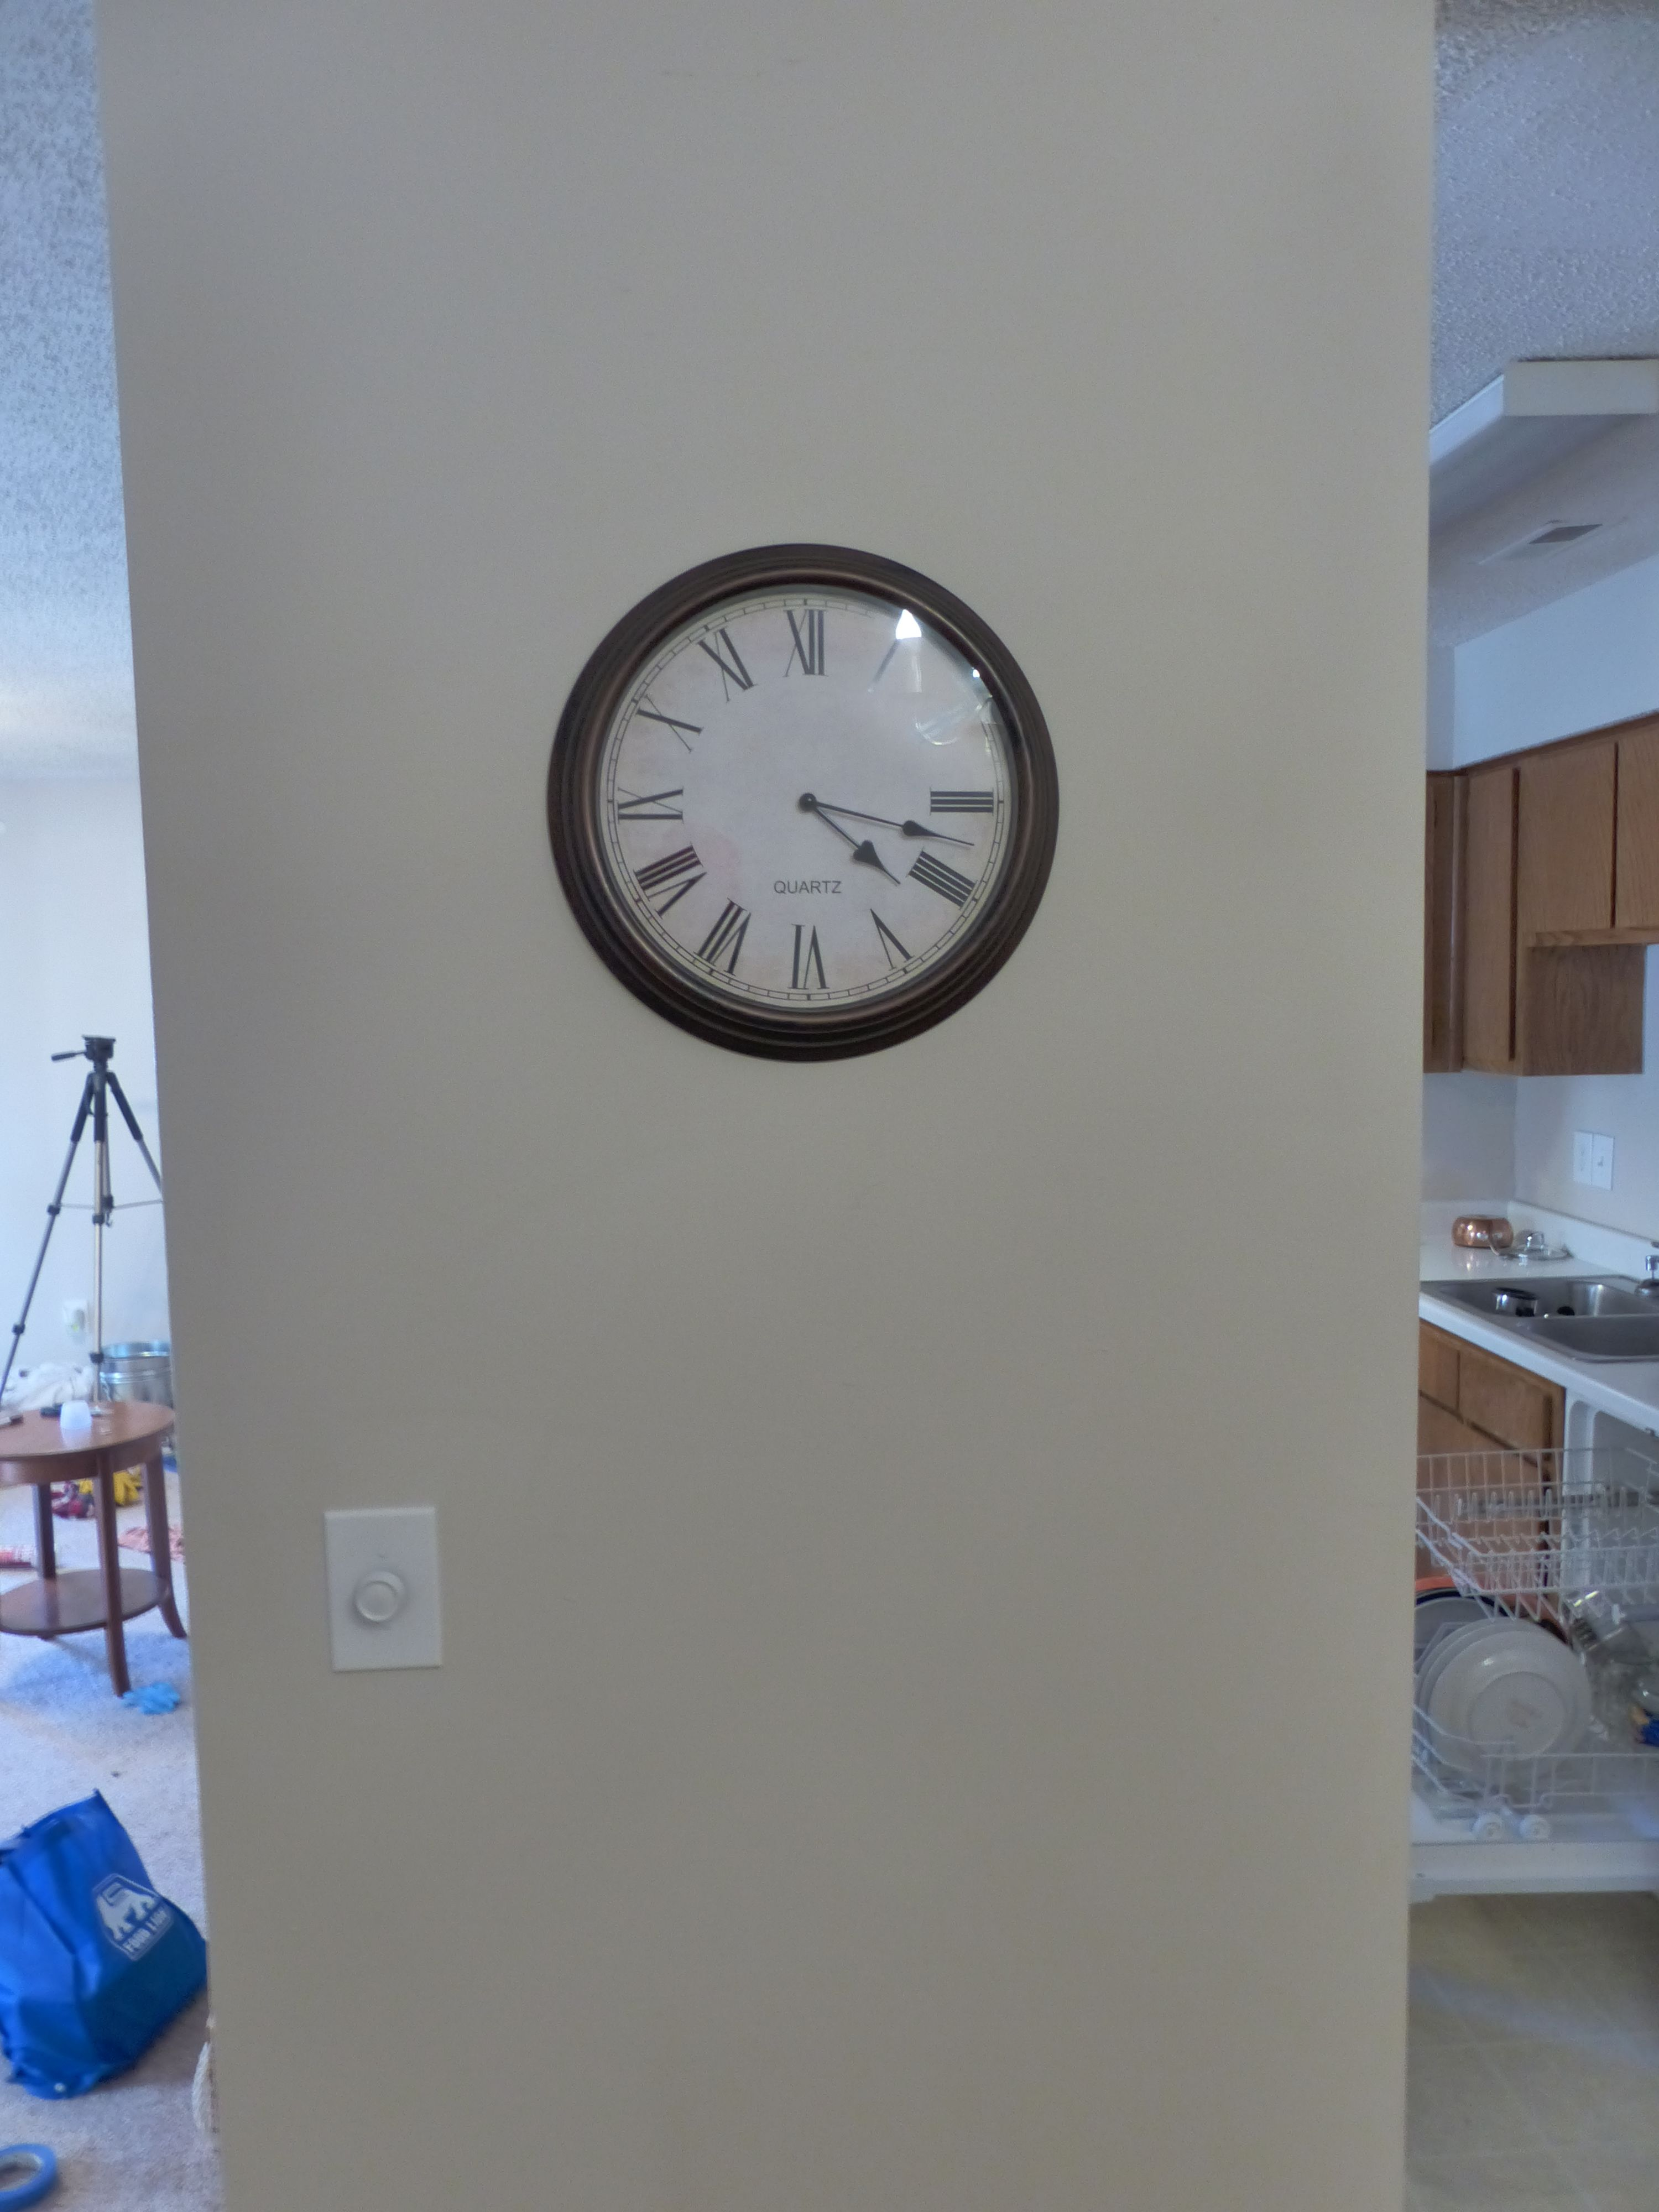 Clock #5, $7.00 at the ACS Thrift Store on HWY 17... first purchase.